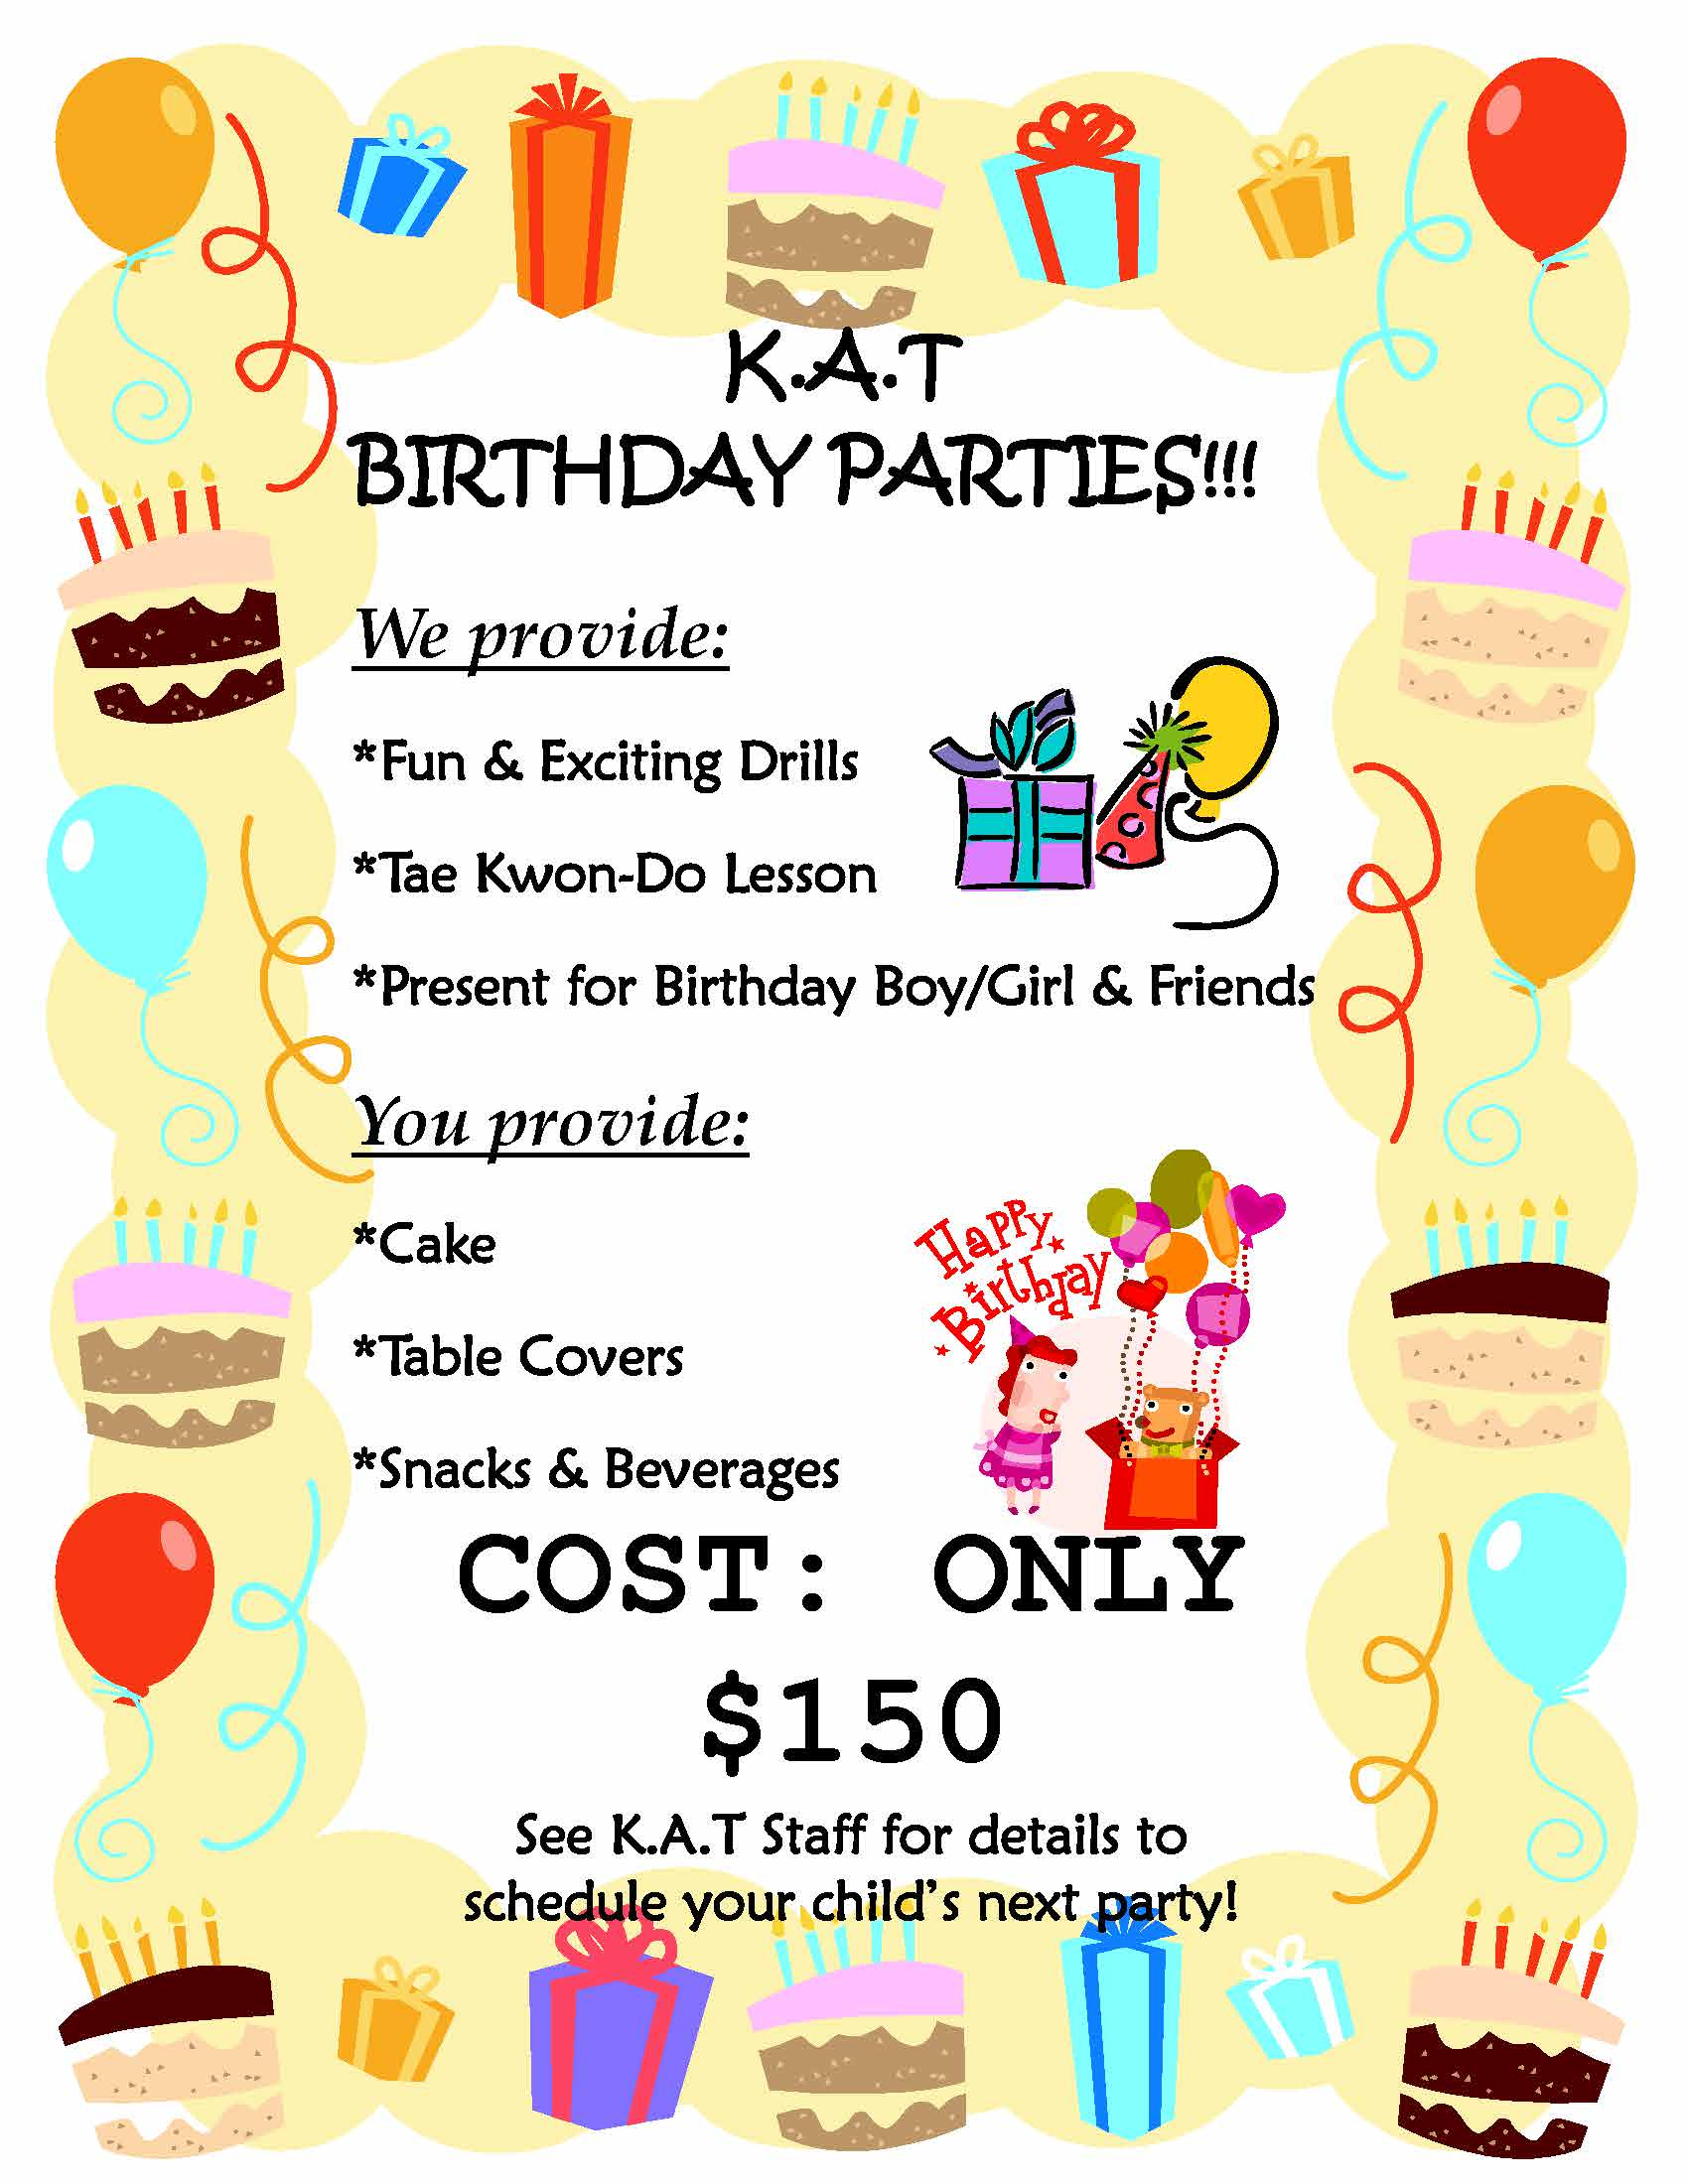 Birthday Party Flyer - Copy